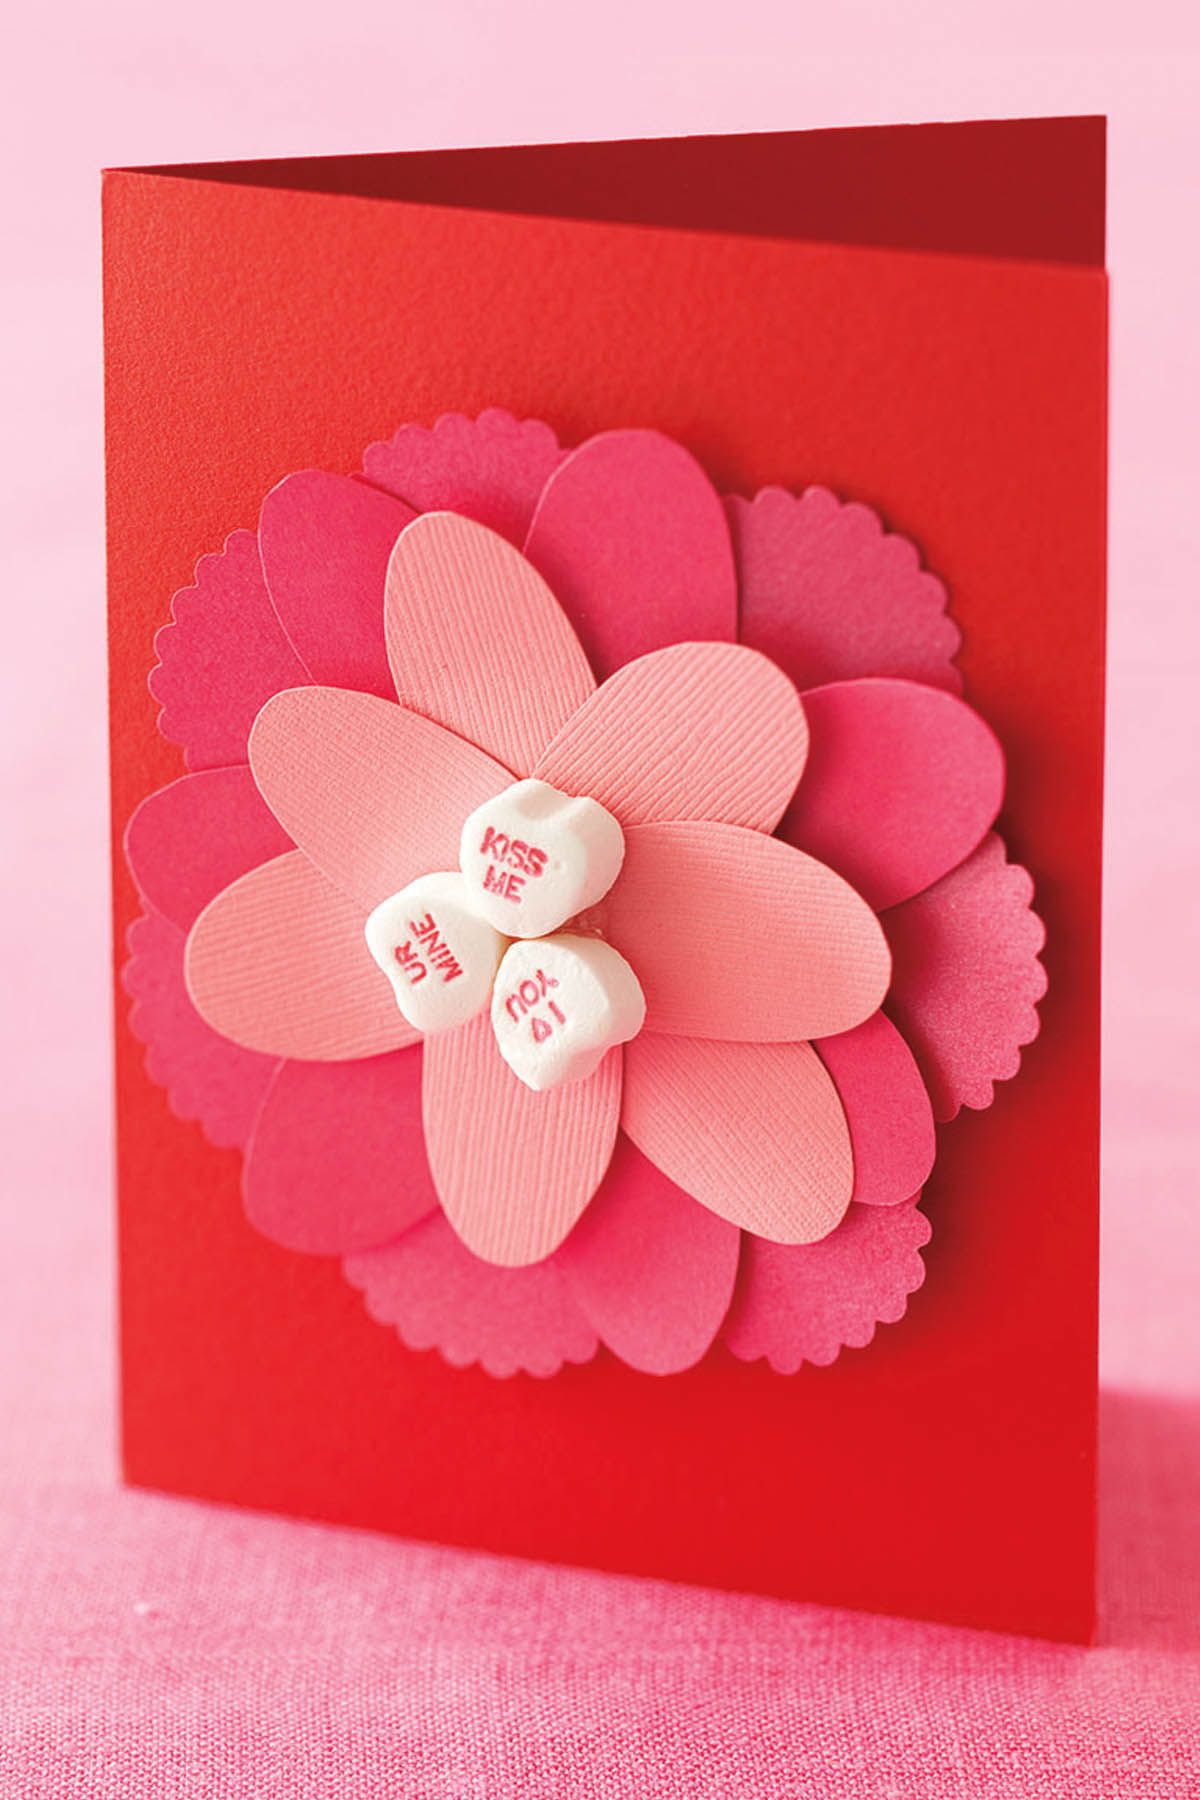 22 Valentine s Day Crafts for Kids Fun Heart Arts and Crafts